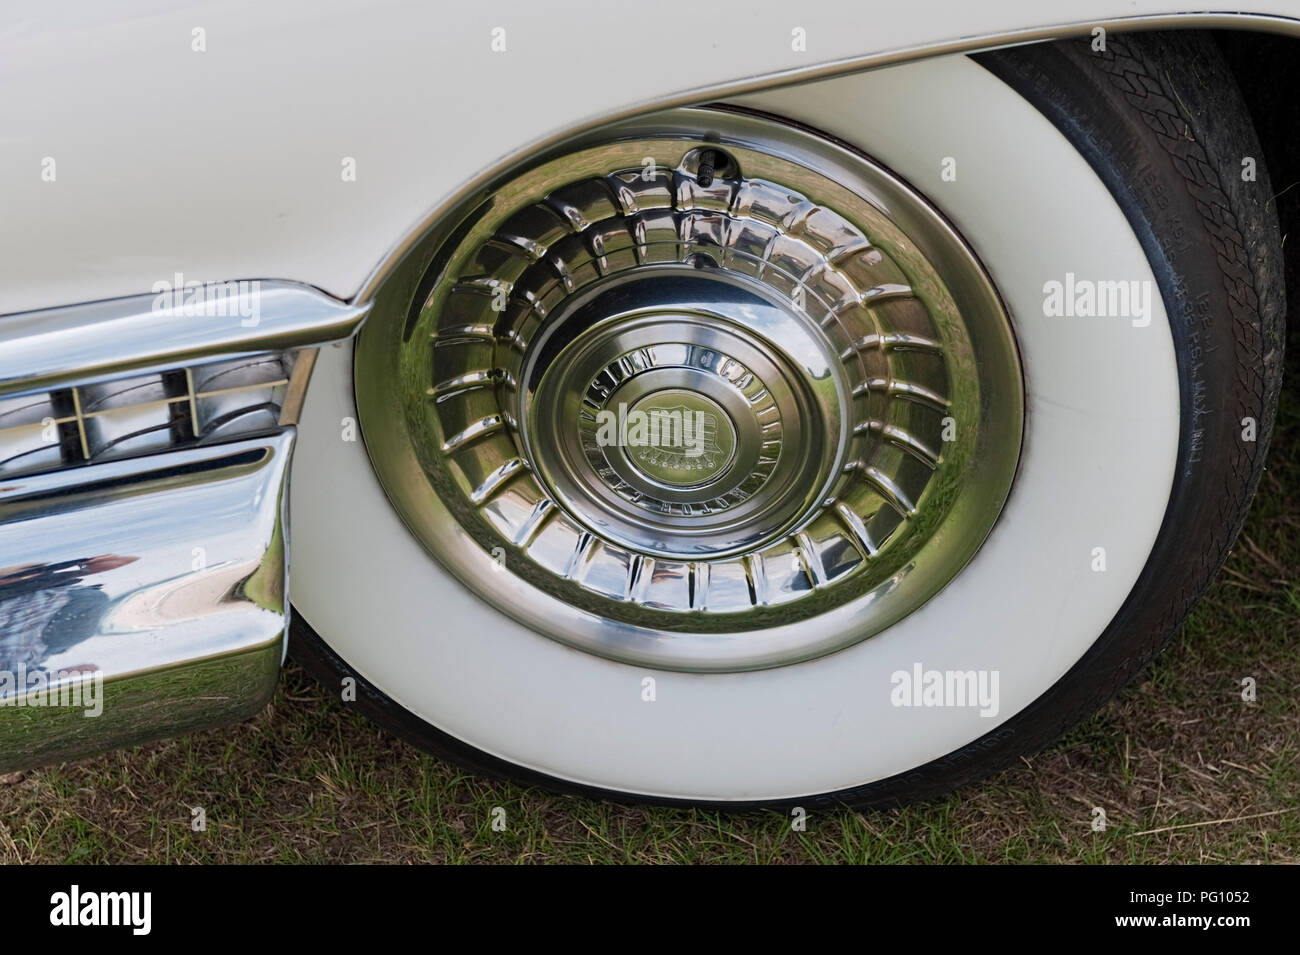 White Wall Tyre on Cadillac - Stock Image